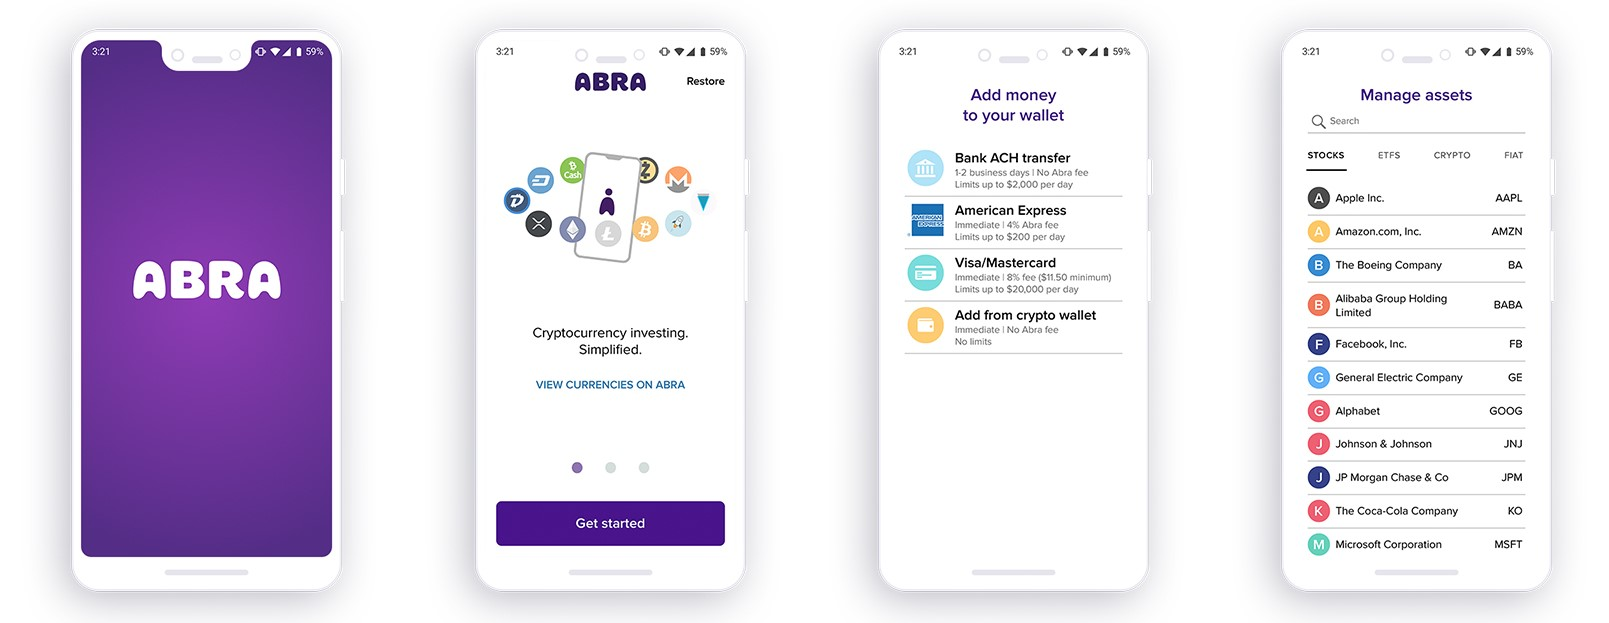 Abra's Blockchain App to Let Users Make Small Stock, ETF Investments